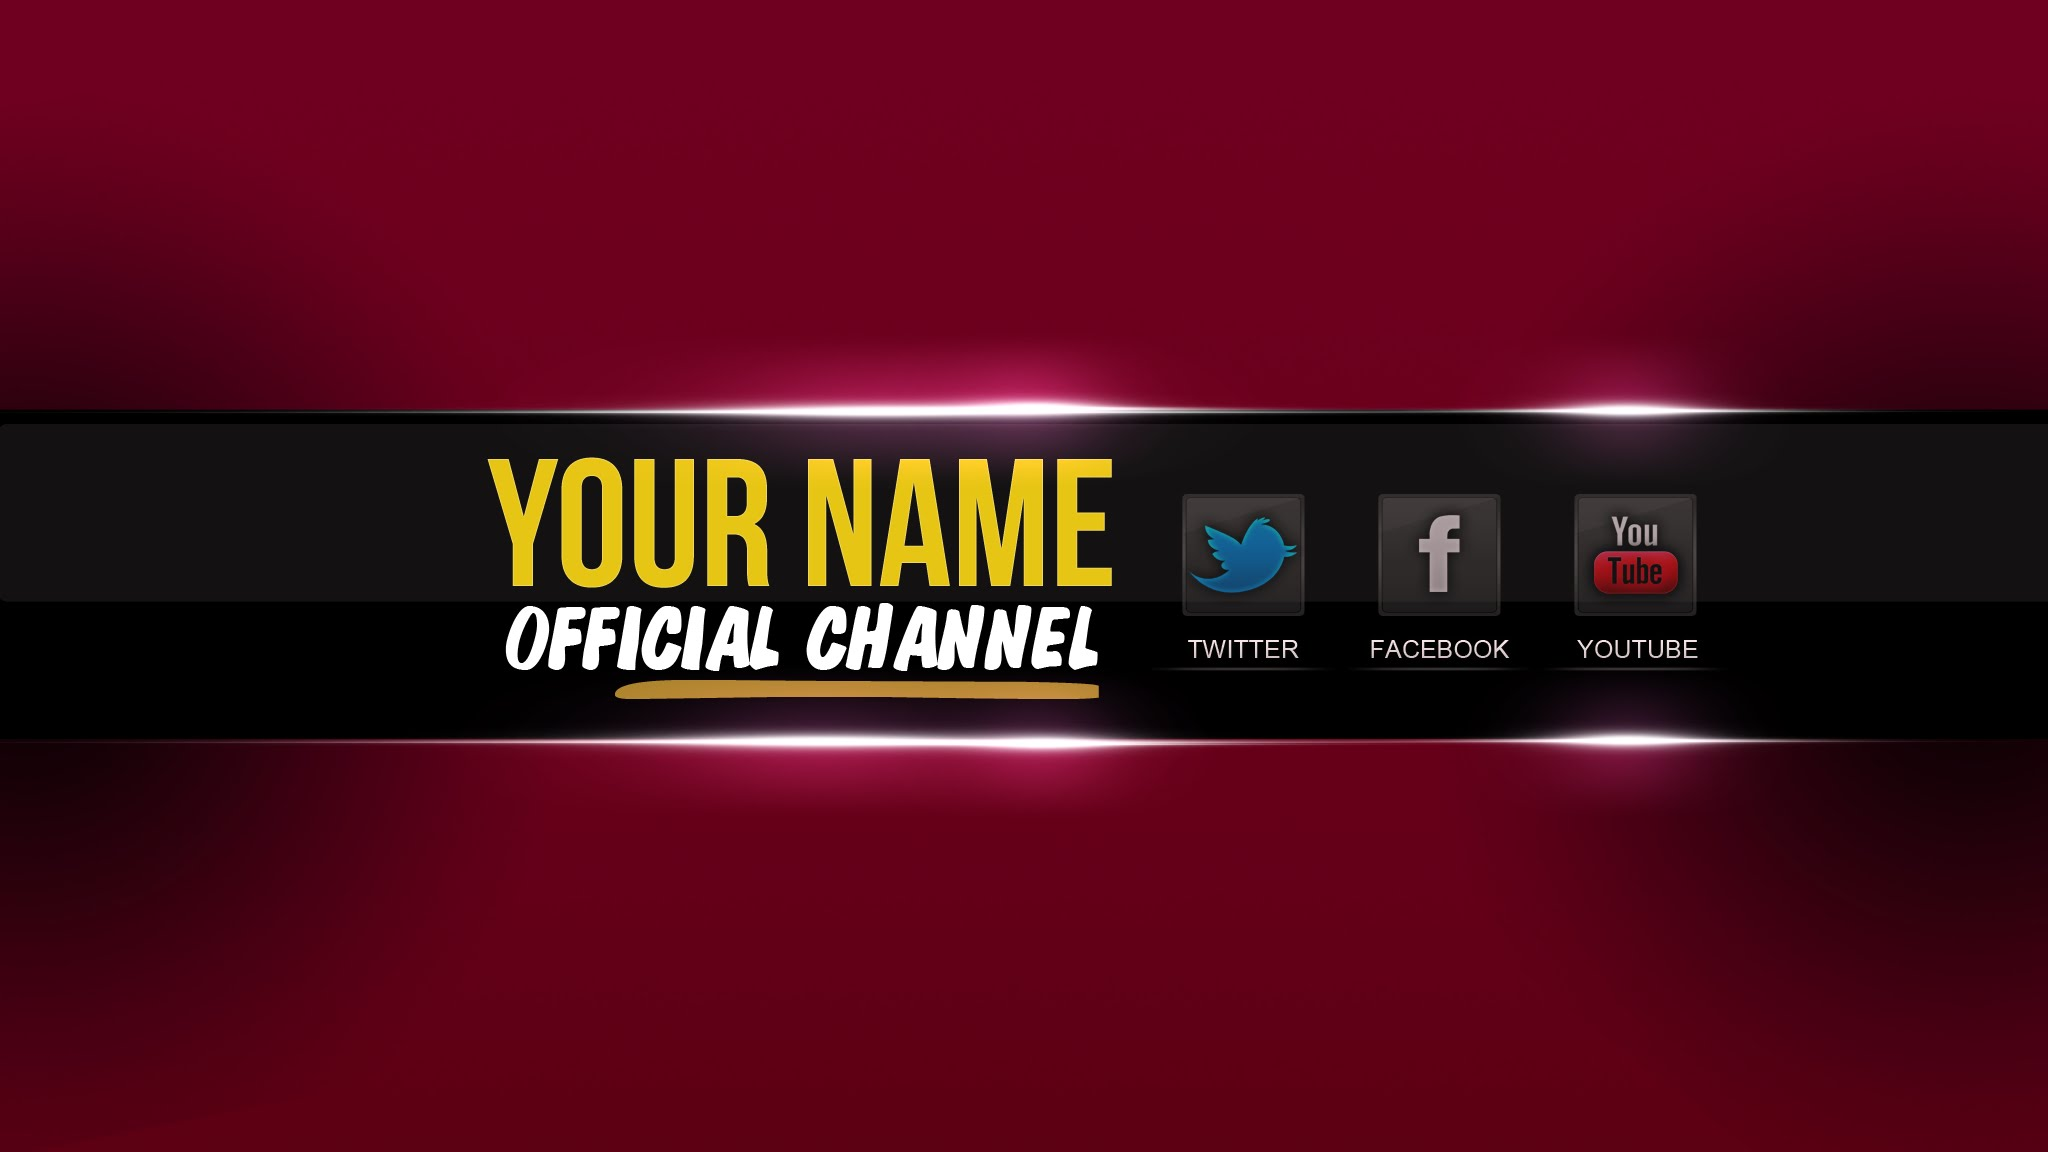 You Banner Template 2017